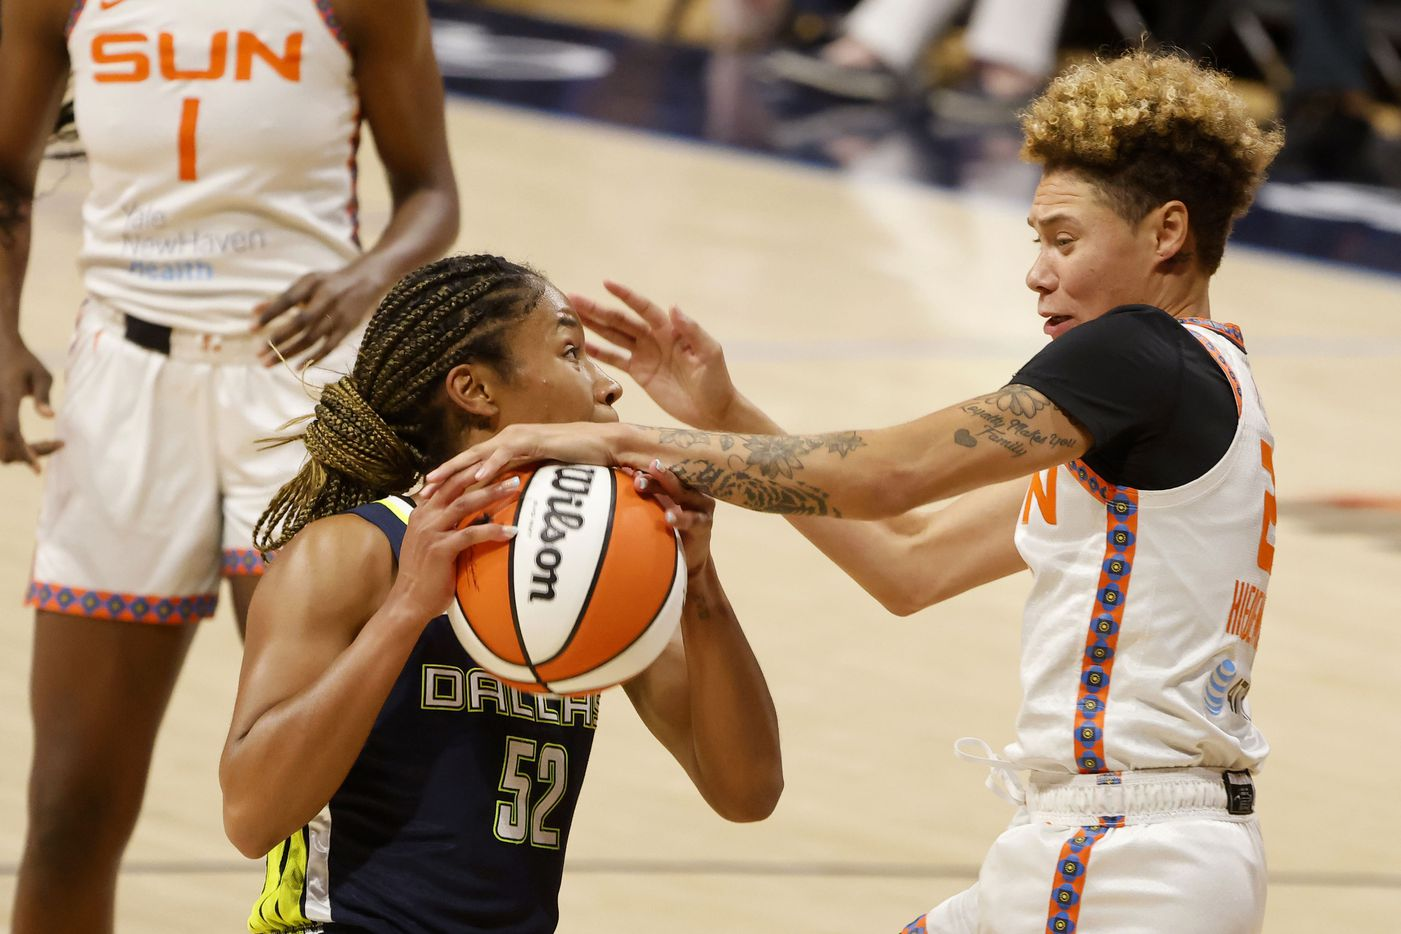 Dallas Wings guard Tyasha Harris (52) has a shot blocked by Connecticut Sun guard Briann January (20) during the second half of a WNBA basketball game in Arlington, Texas on Tuesday, Sept. 07, 2021. (Michael Ainsworth/Special Contributor)